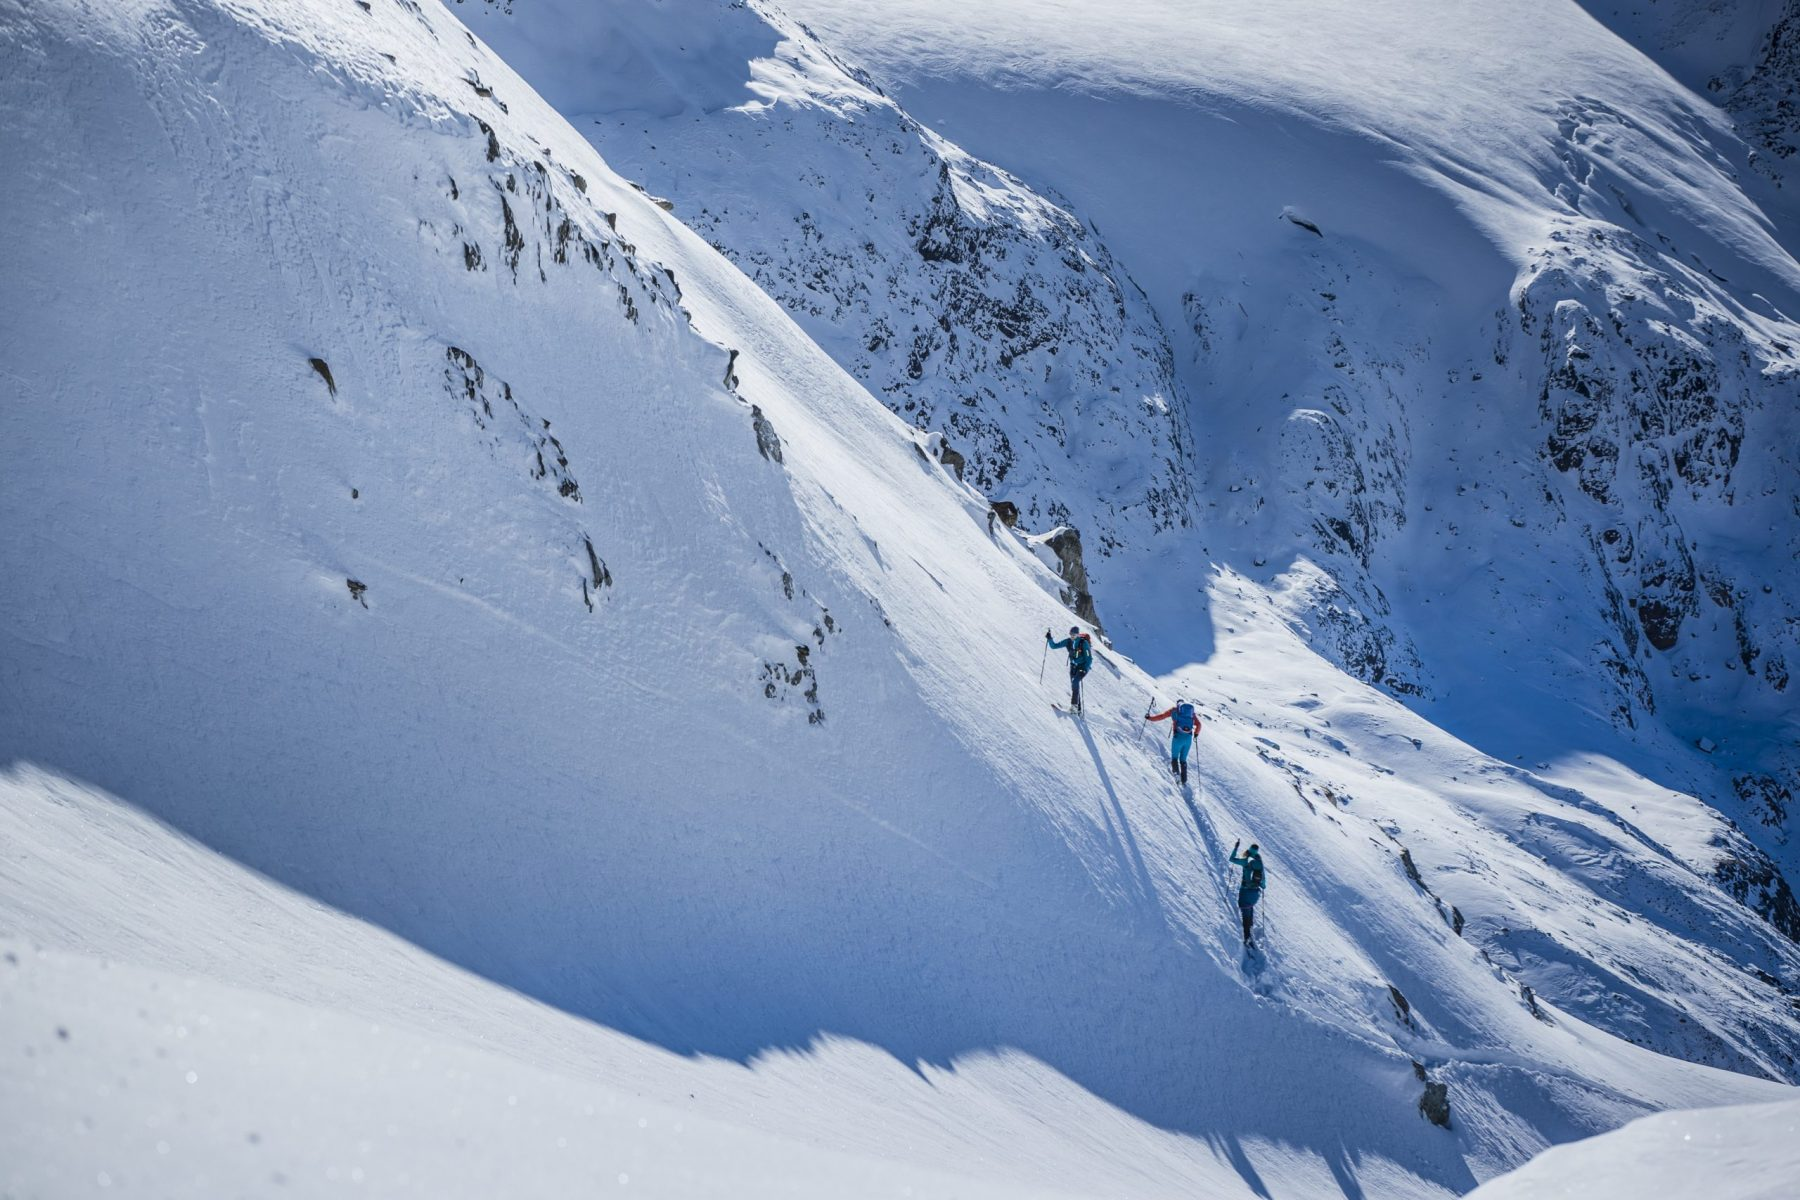 Photo: Credit- Ortovox. Henry's Avalanche Talk. Off-Piste snow report for December 13, 2019 for the Northern French alps.